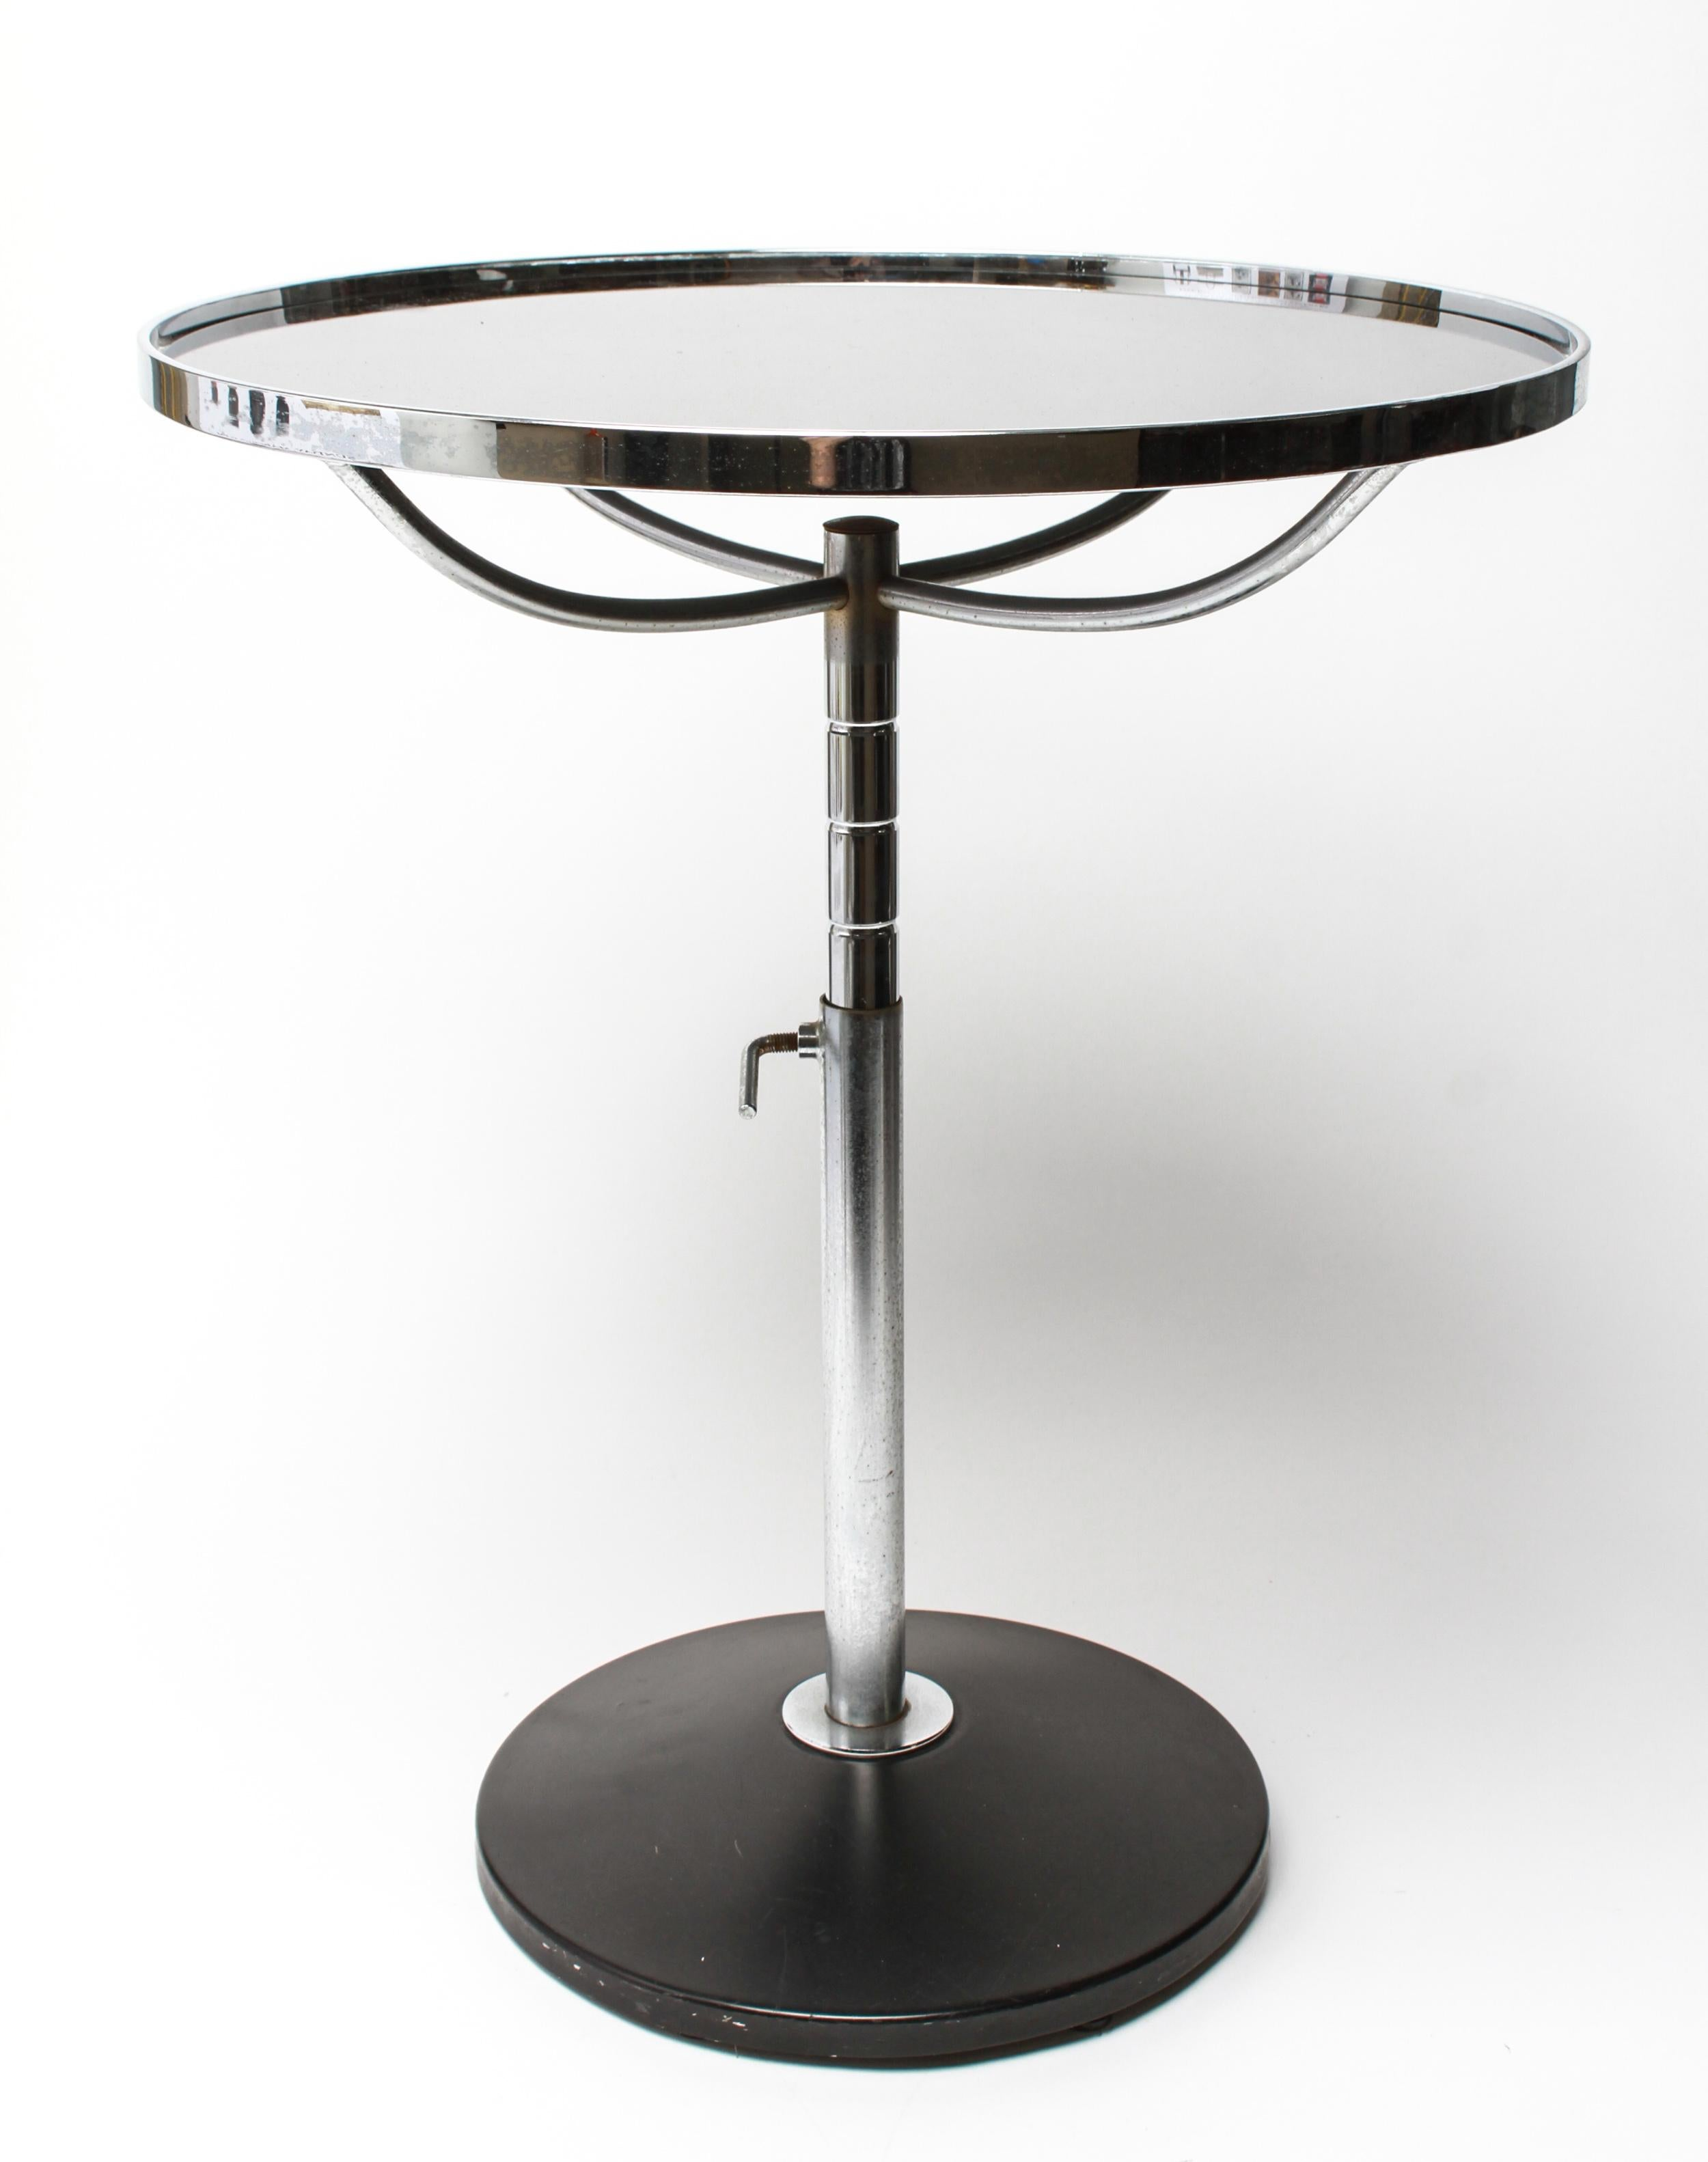 Modern Metal Circular Side Table With Adjustable Height